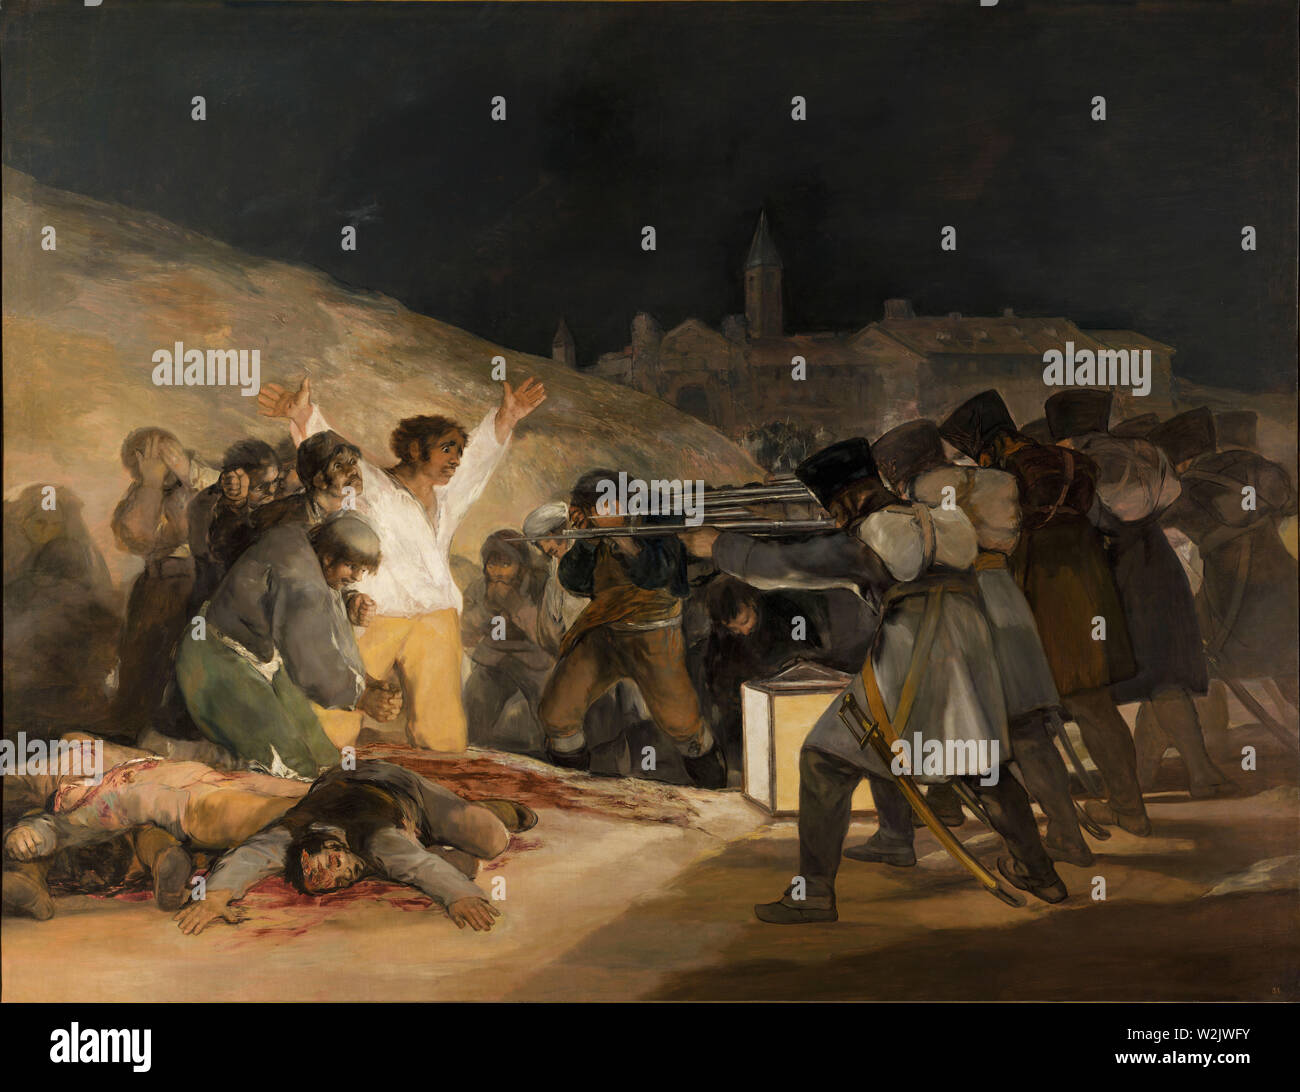 Execution of the Madrid rebels by a French firing squad on the Third of May 1808, as painted by Francisco Goya. - Stock Image